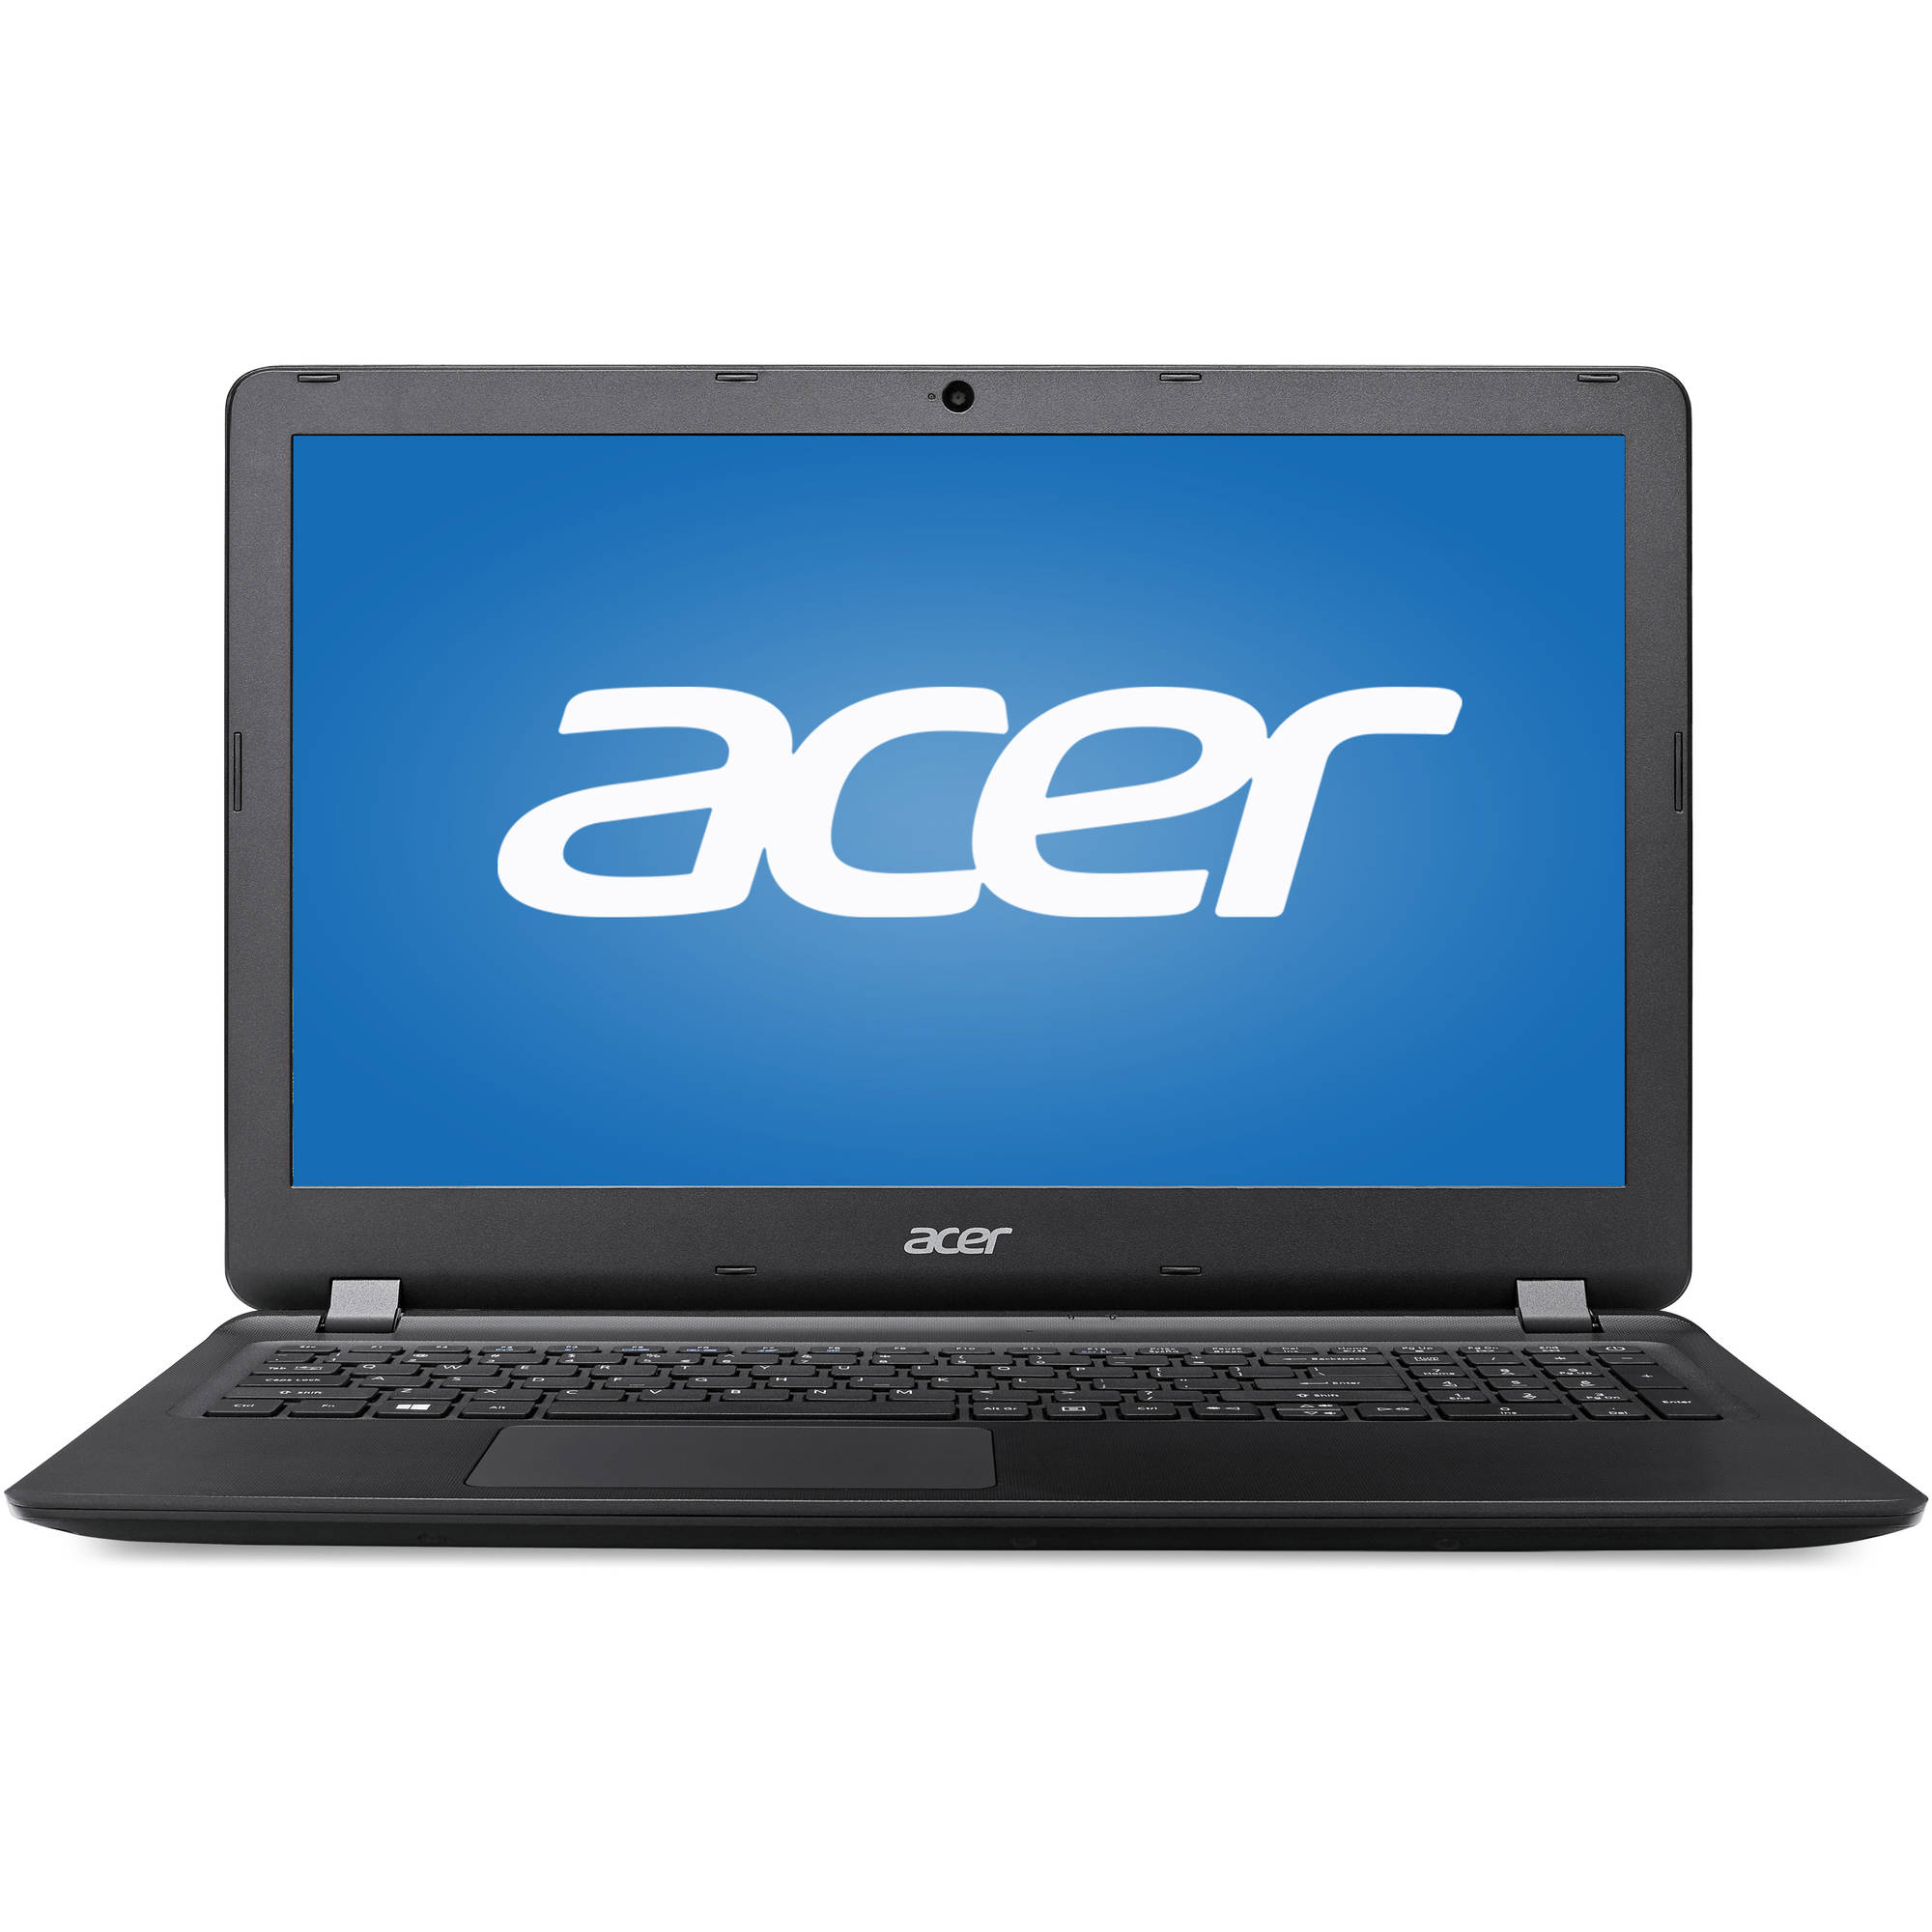 "Acer Aspire ES1-572-31XL 15.6"" Laptop, Windows 10 Home, Intel Core i3-6100U Dual-Core Processor, 4GB Memory, 1TB Hard Drive"